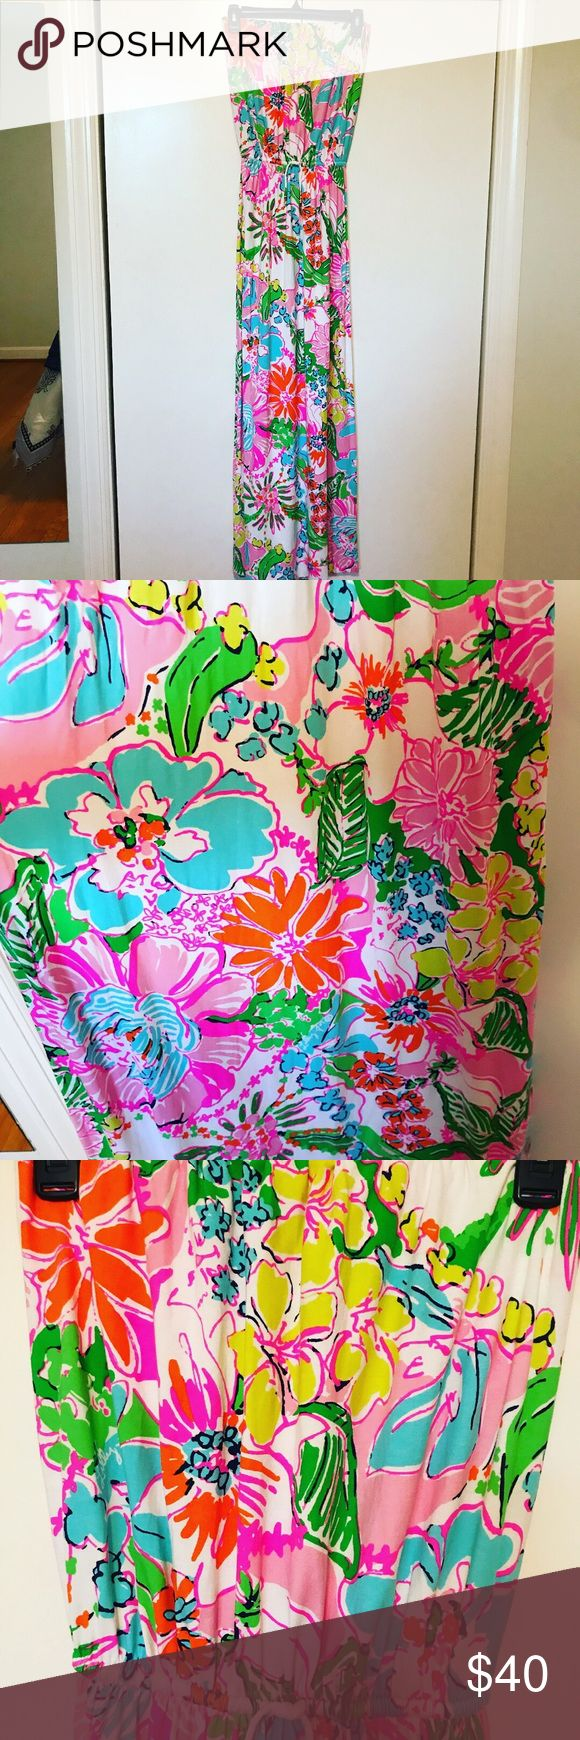 Lilly Pulitzer by target maxi dress Lily Pulitzer by target, cotton strapless maxi dress, multi color flowers Lilly Pulitzer for Target Dresses Maxi